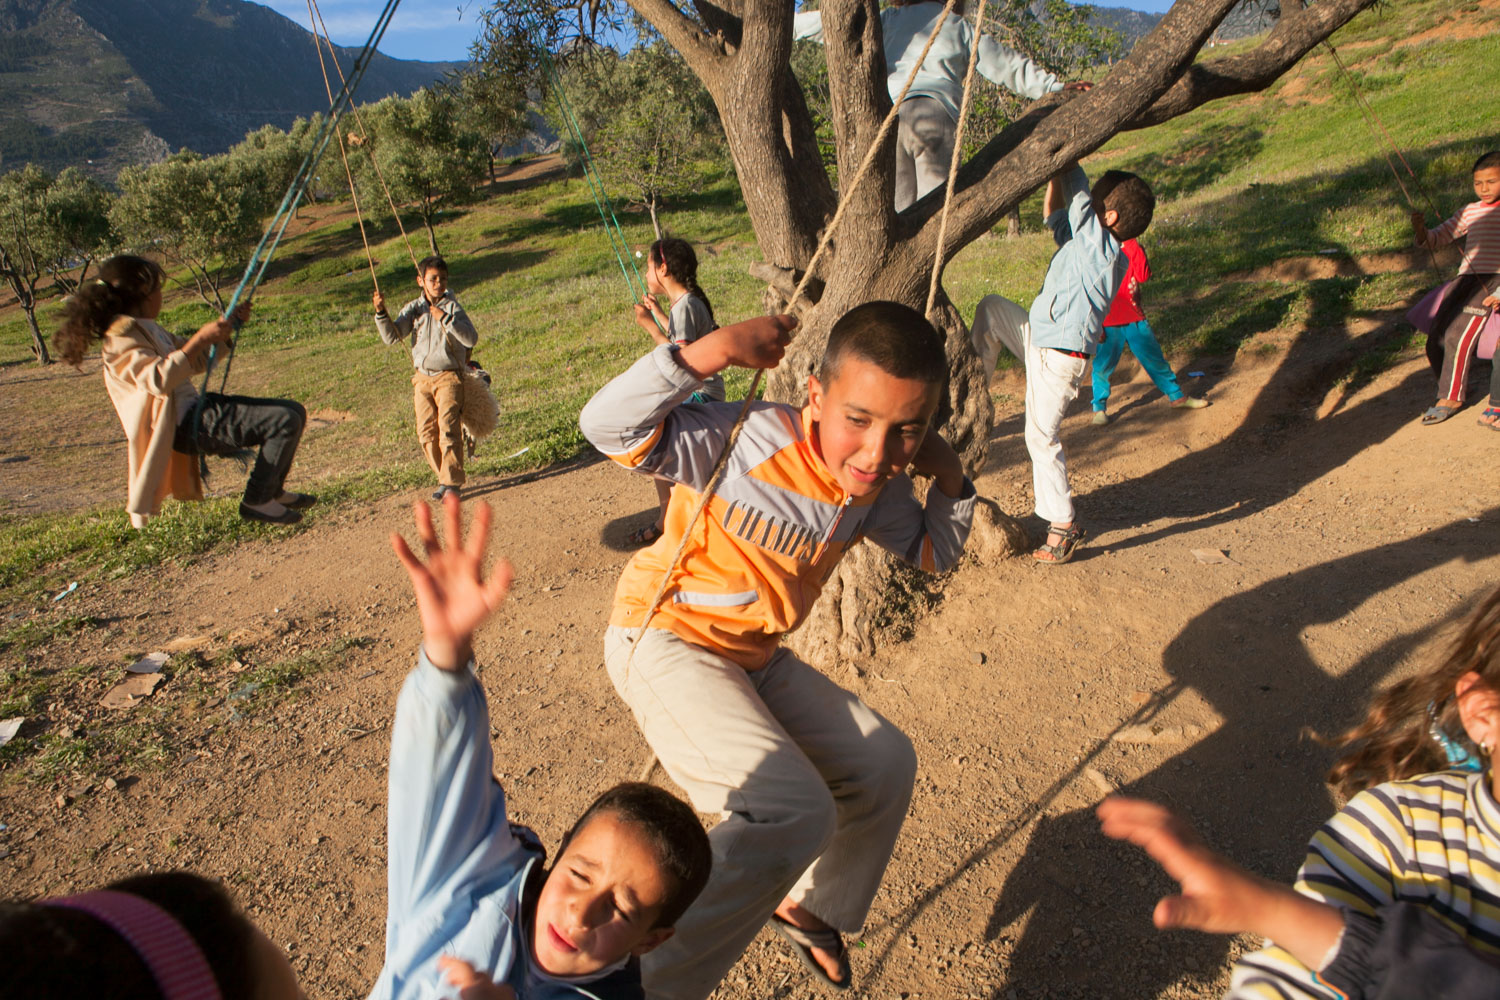 On a hillside outside Chefchaouen, Morocco, children transform a sturdy tree into a central playground that houses multiple swings and offers an area for fun. But with many kids vying for space, one child is struck by another and is flung forward.